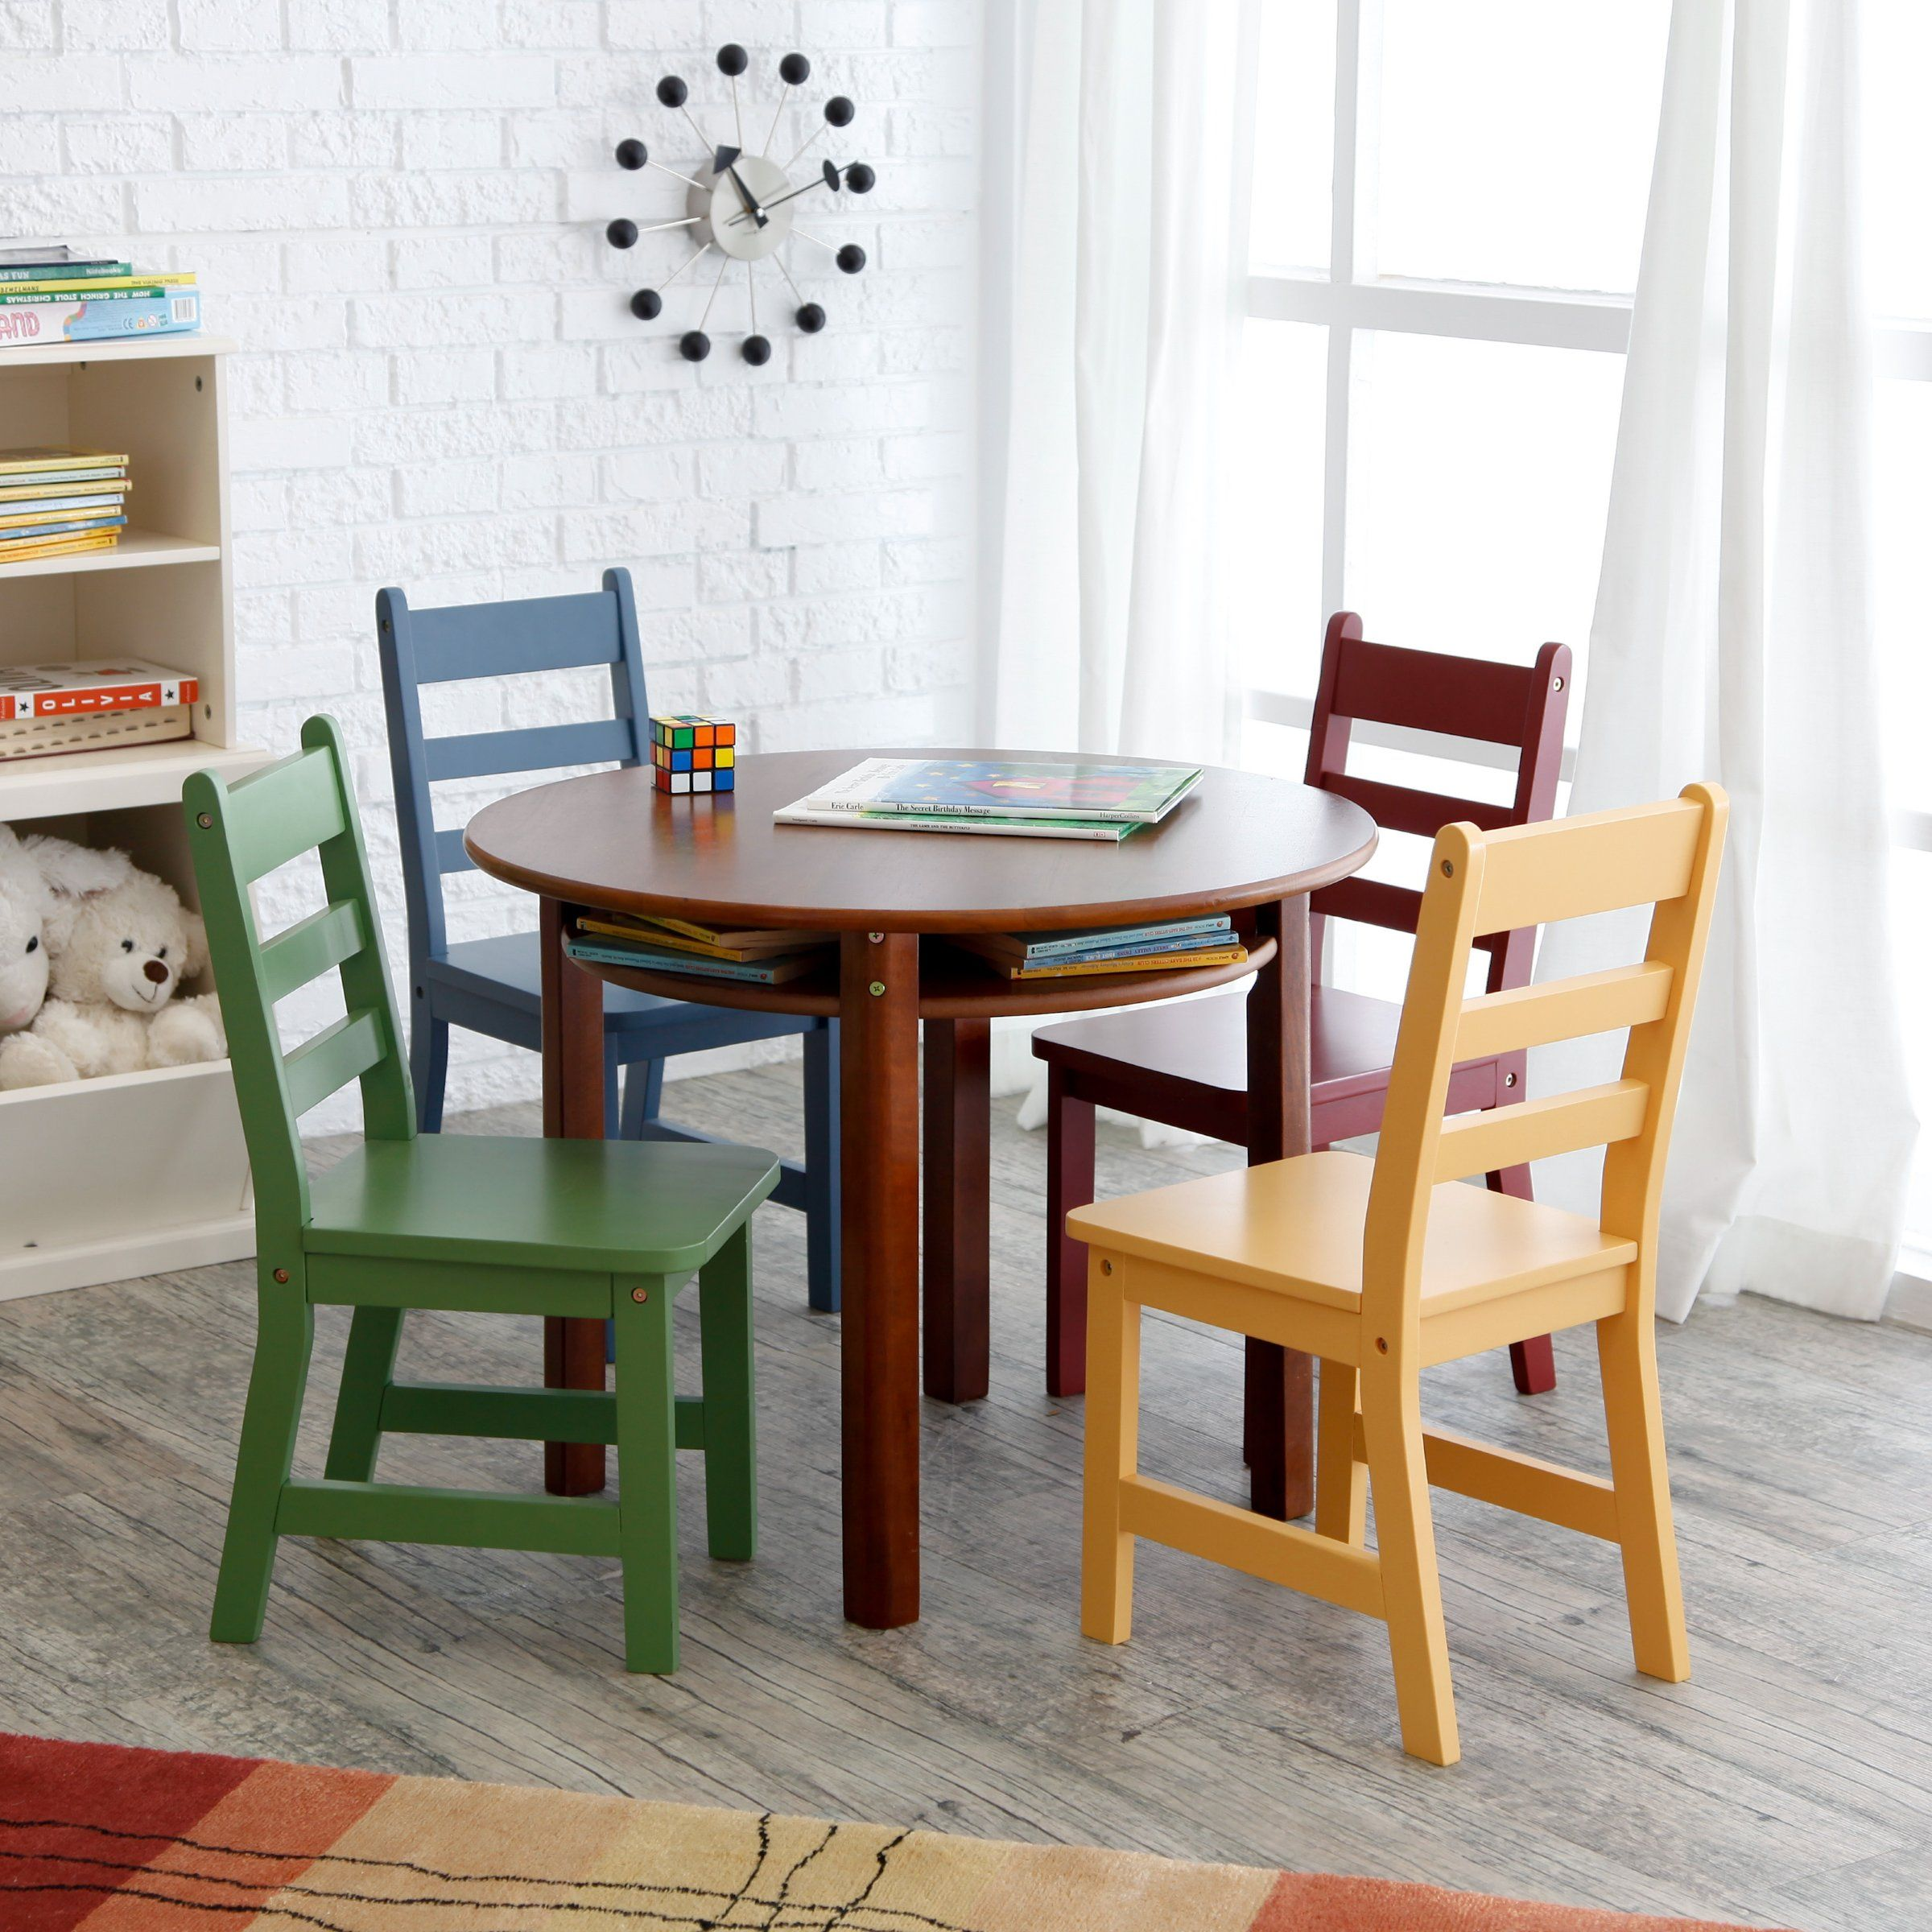 Lipper Childrens Walnut Round Table And 4 Chairs Activity Tables At Hayneedle